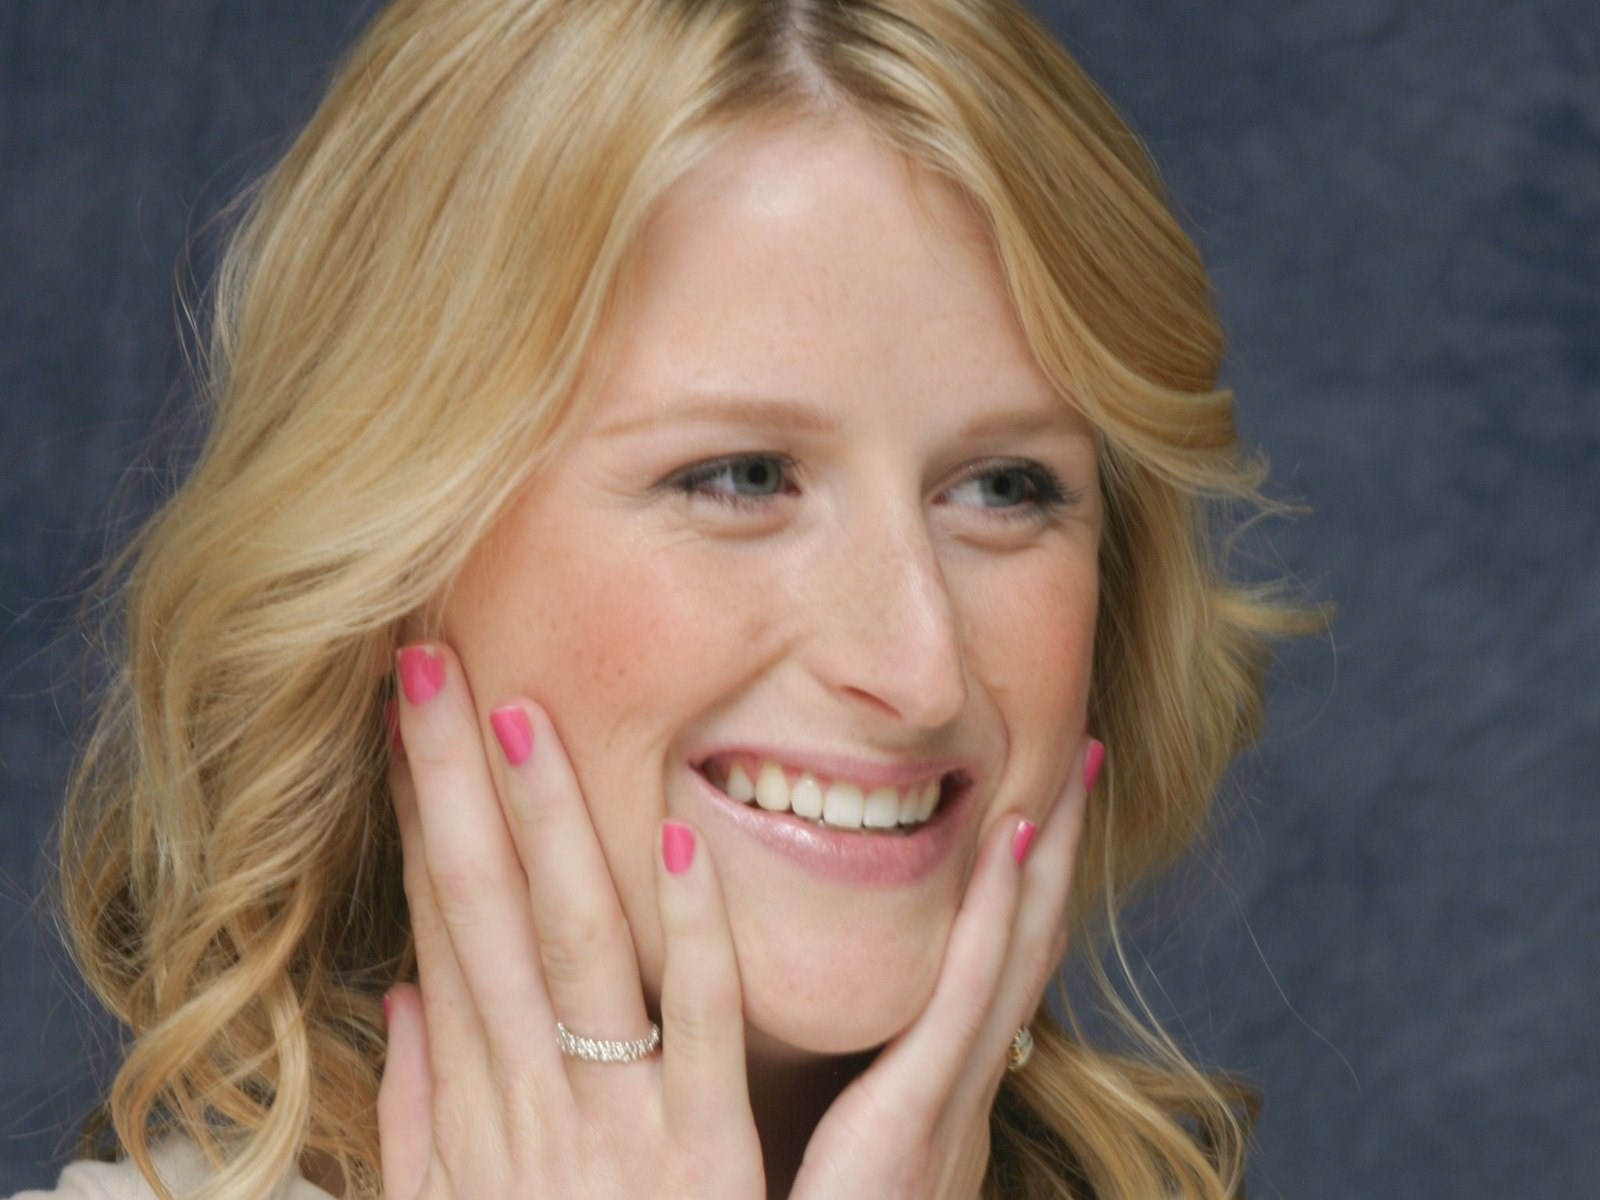 mamie gummer wallpaper pictures 55841